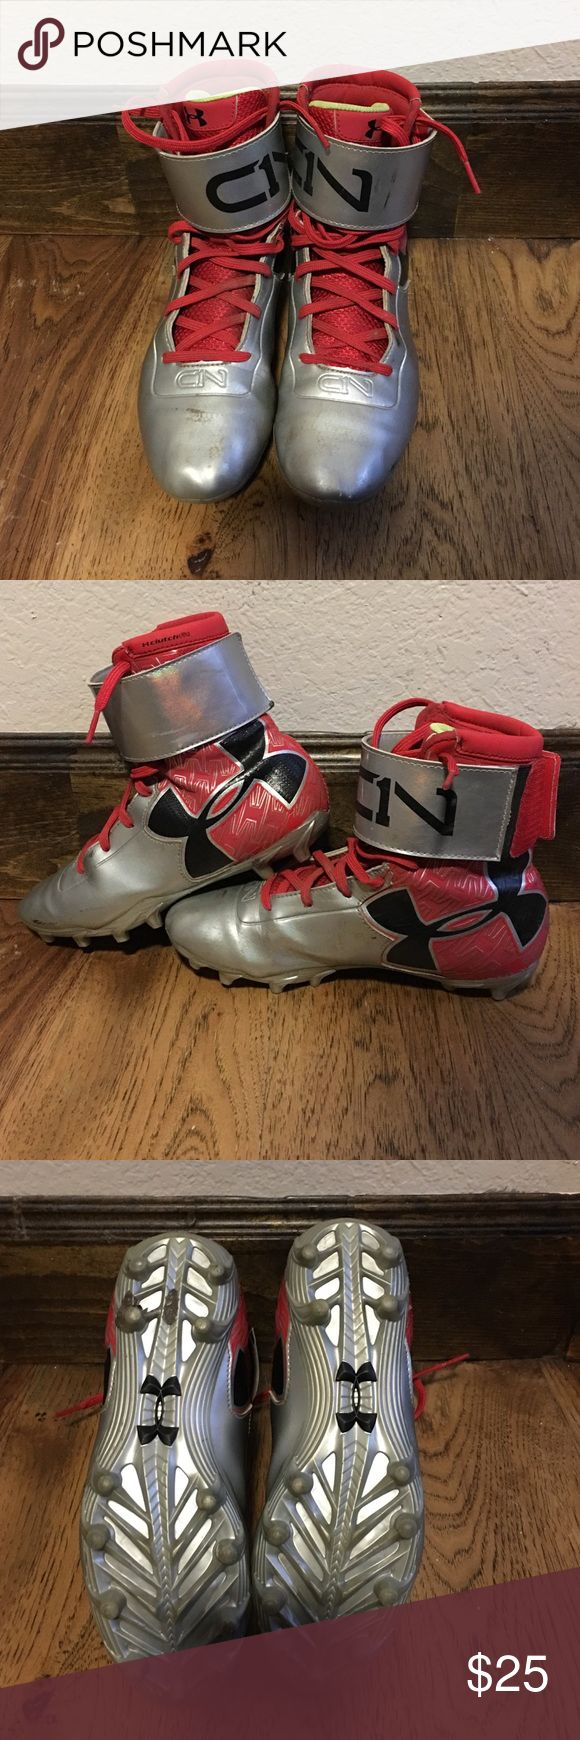 Cam Newton Under Armour cleats. Boys size 4 football cleats. Worn for one season. Great condition. Under Armour Shoes